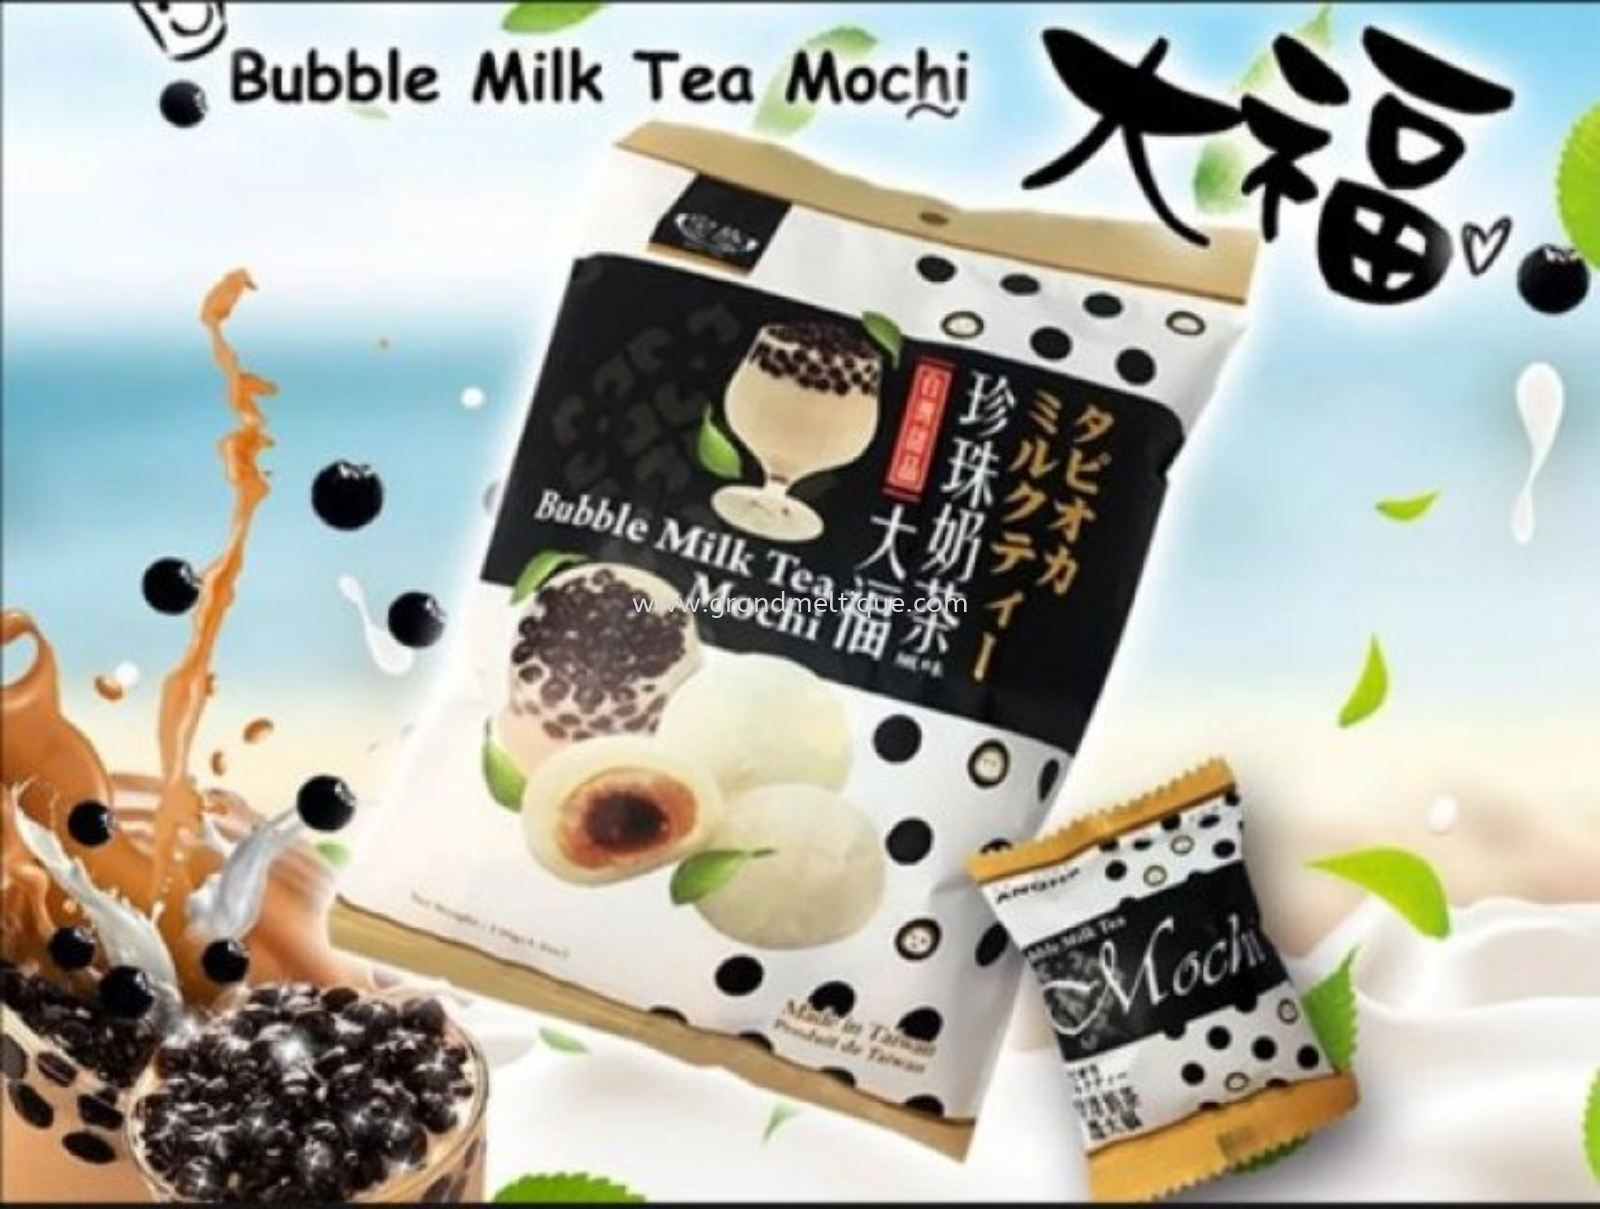 RF MOCHI BUBBLE MILK TEA 皇族珍珠奶茶麻薯120G x 12 RF MOCHI BUBBLE MILK TEA 皇族珍珠奶茶麻薯120G